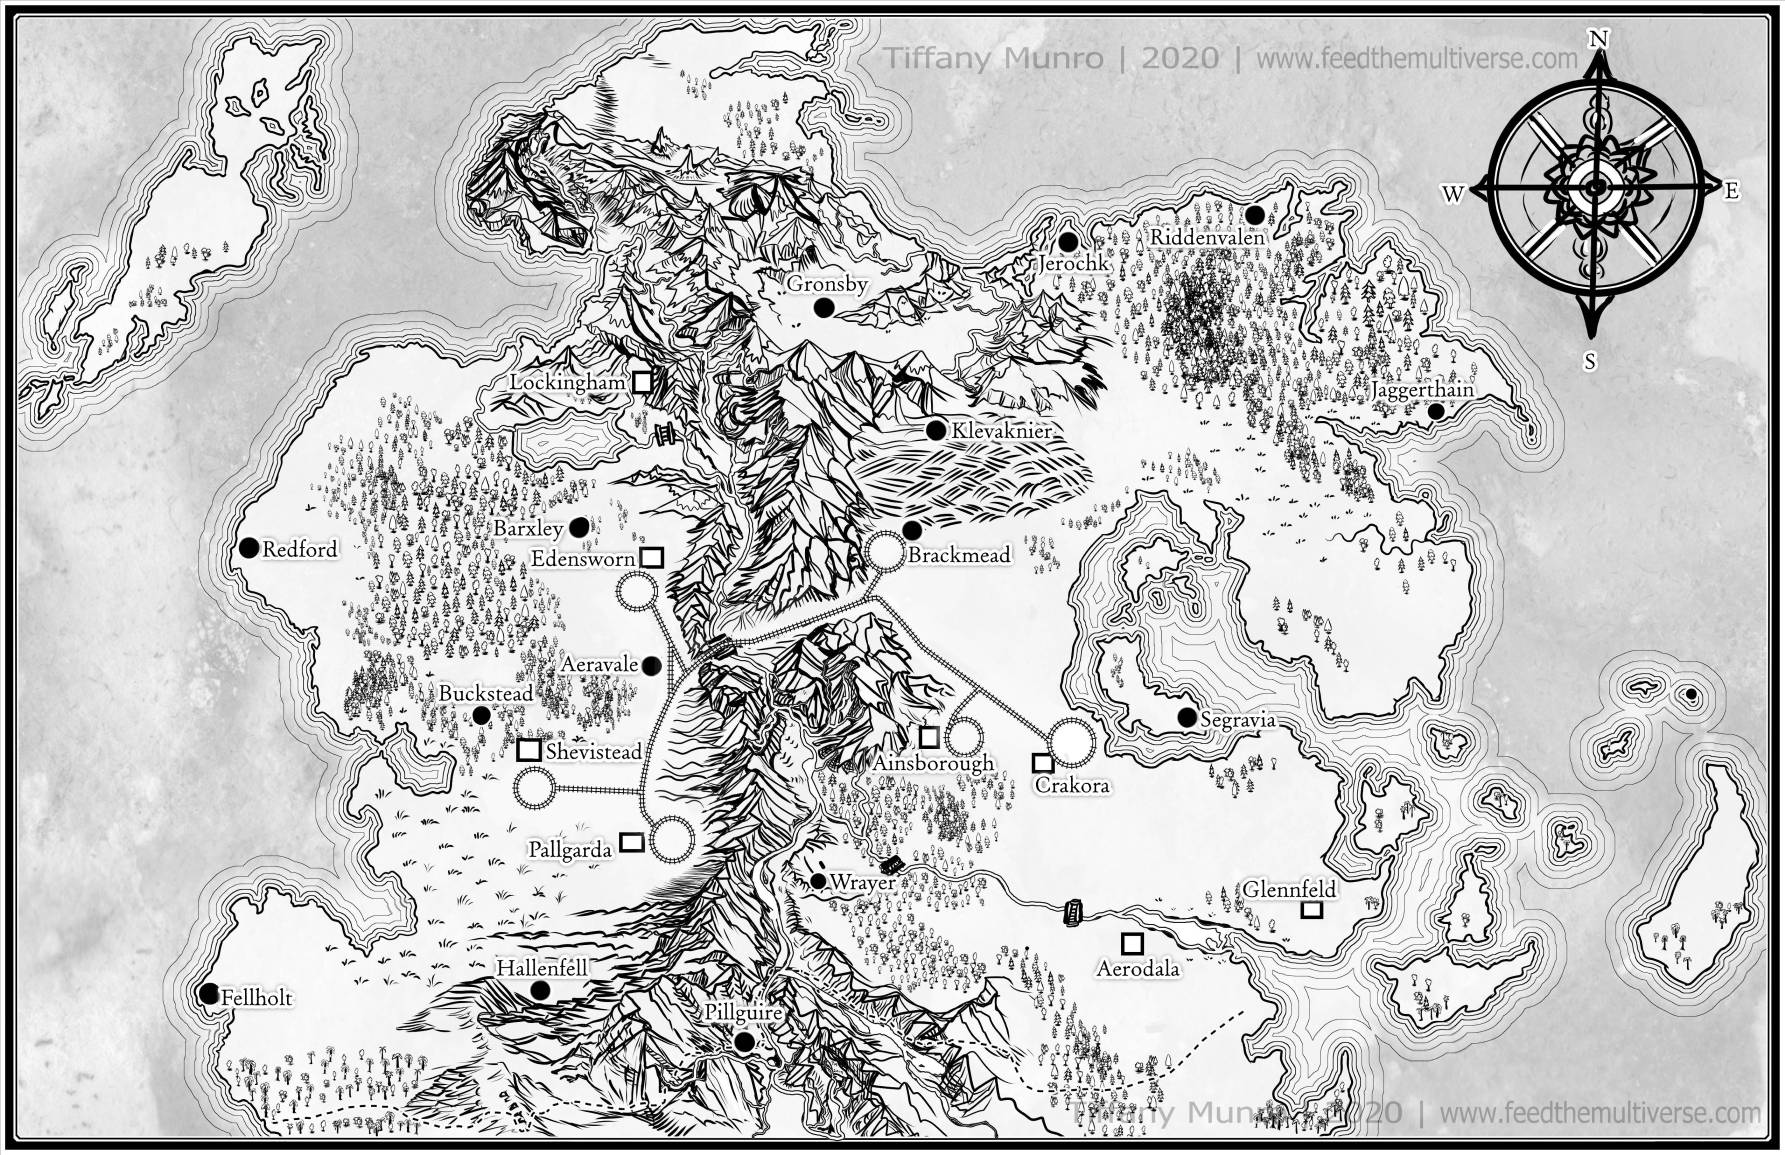 Black and White fantasy map for novel bw b&w ink tolkeien style fantasy sff speculative fiction how do I get a map for my novel how to commission a custom map for my fantasy book science fiction book dungeons and dragons writers authors cartographer cartographers cartography